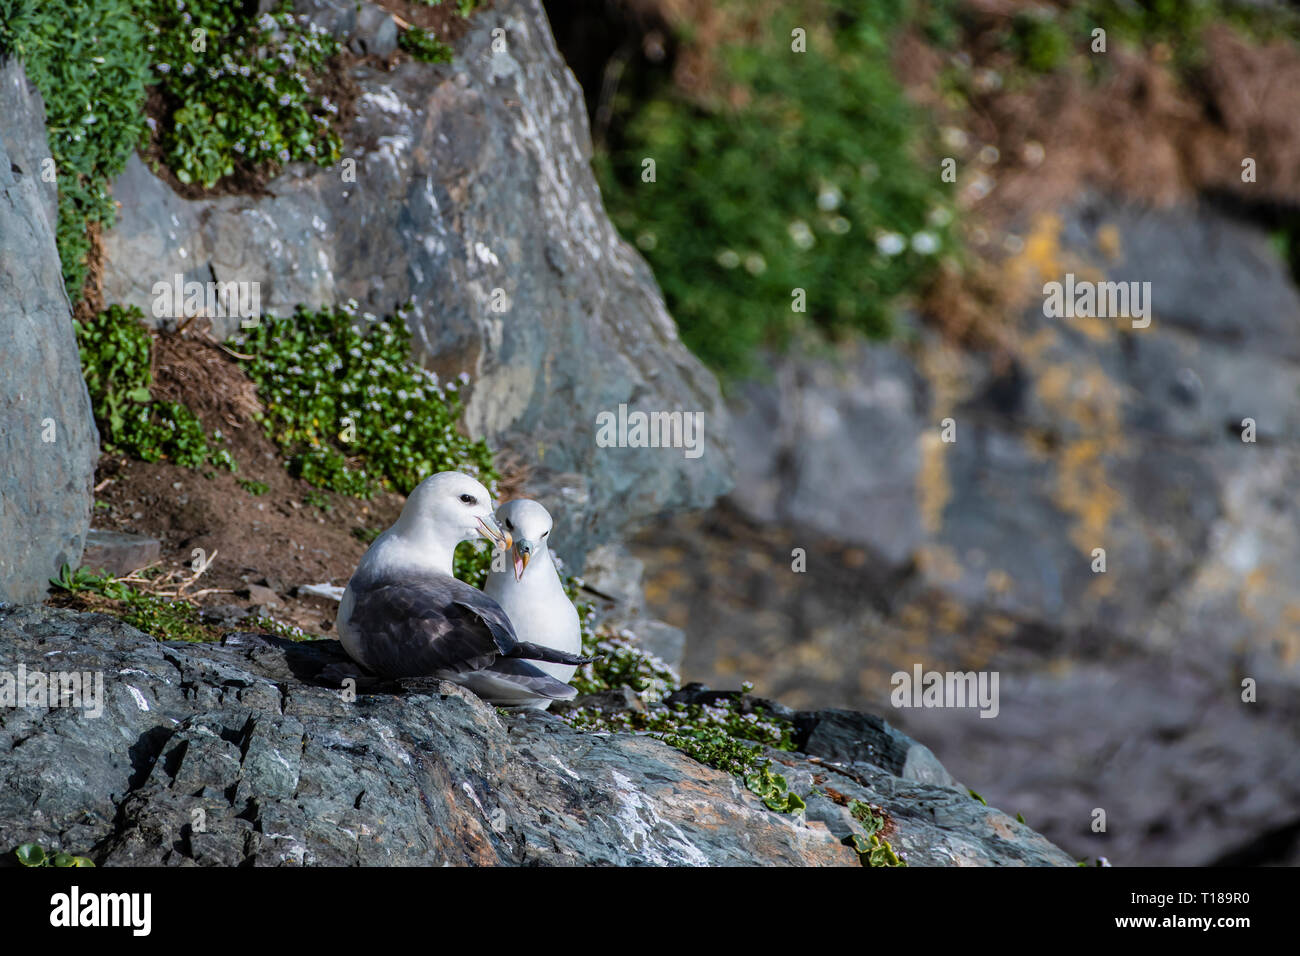 Bray Head, Ireland. 24th March, 2019 Pair of Kittiwakes enjoying warm and wind free weather on the south side cliffs of Bray Head. Credit: Vitaliy Tuzov/Alamy Live News - Stock Image